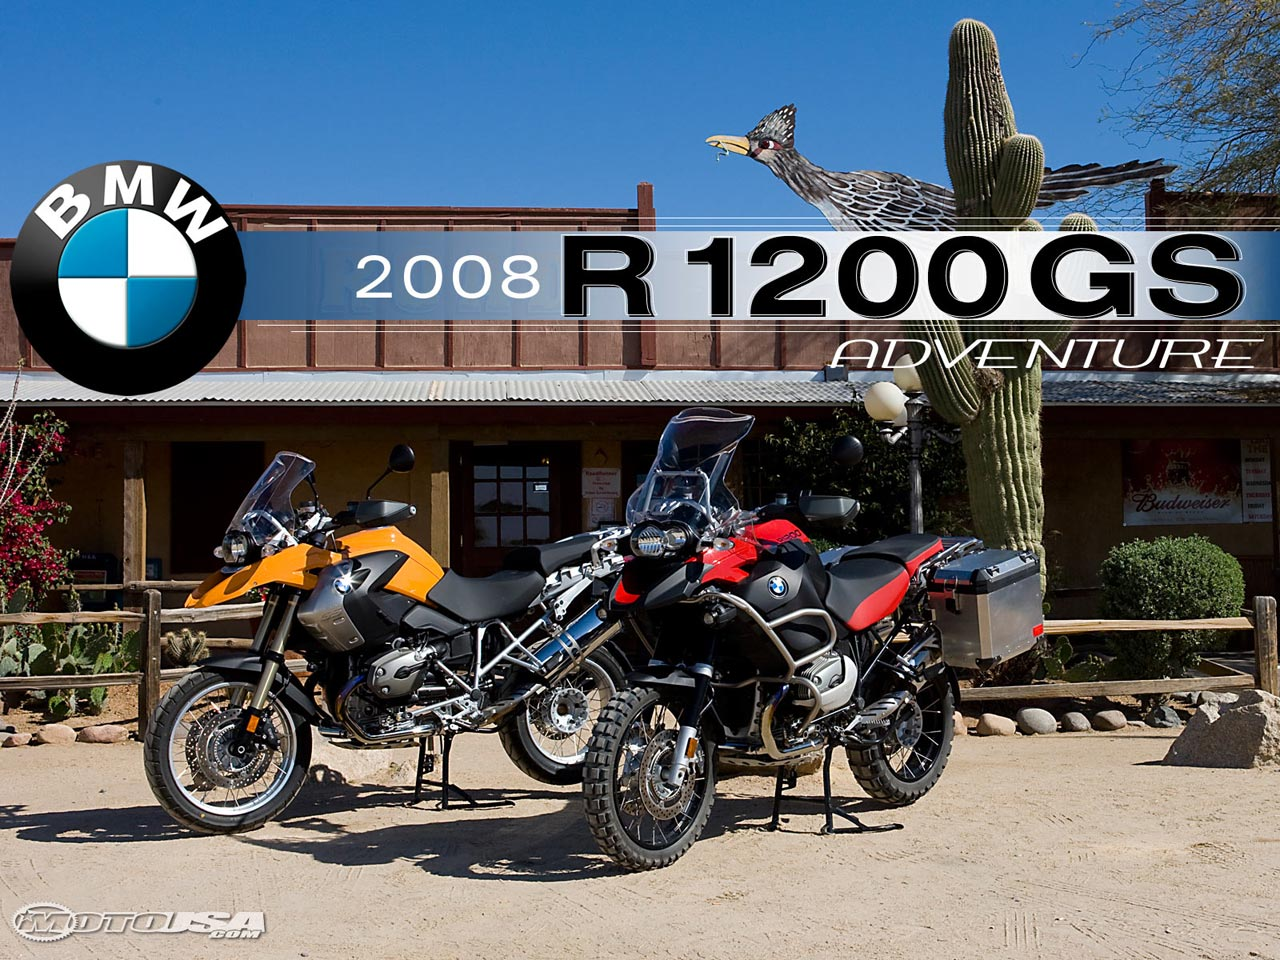 BMW R1200GS images #8217